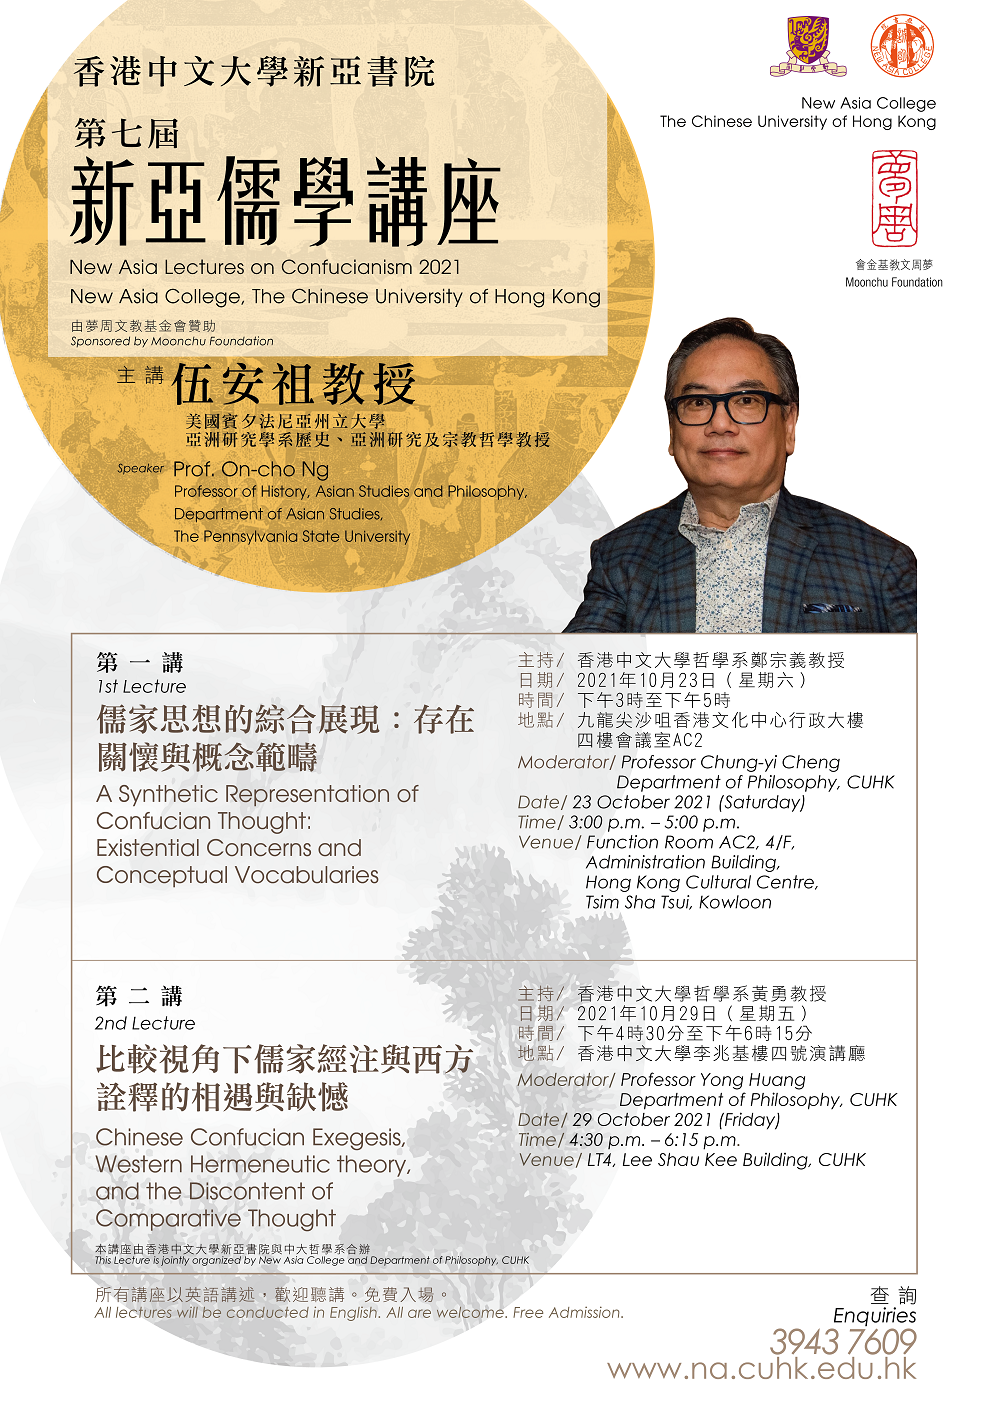 New Asia Lectures on Confucianism 2021